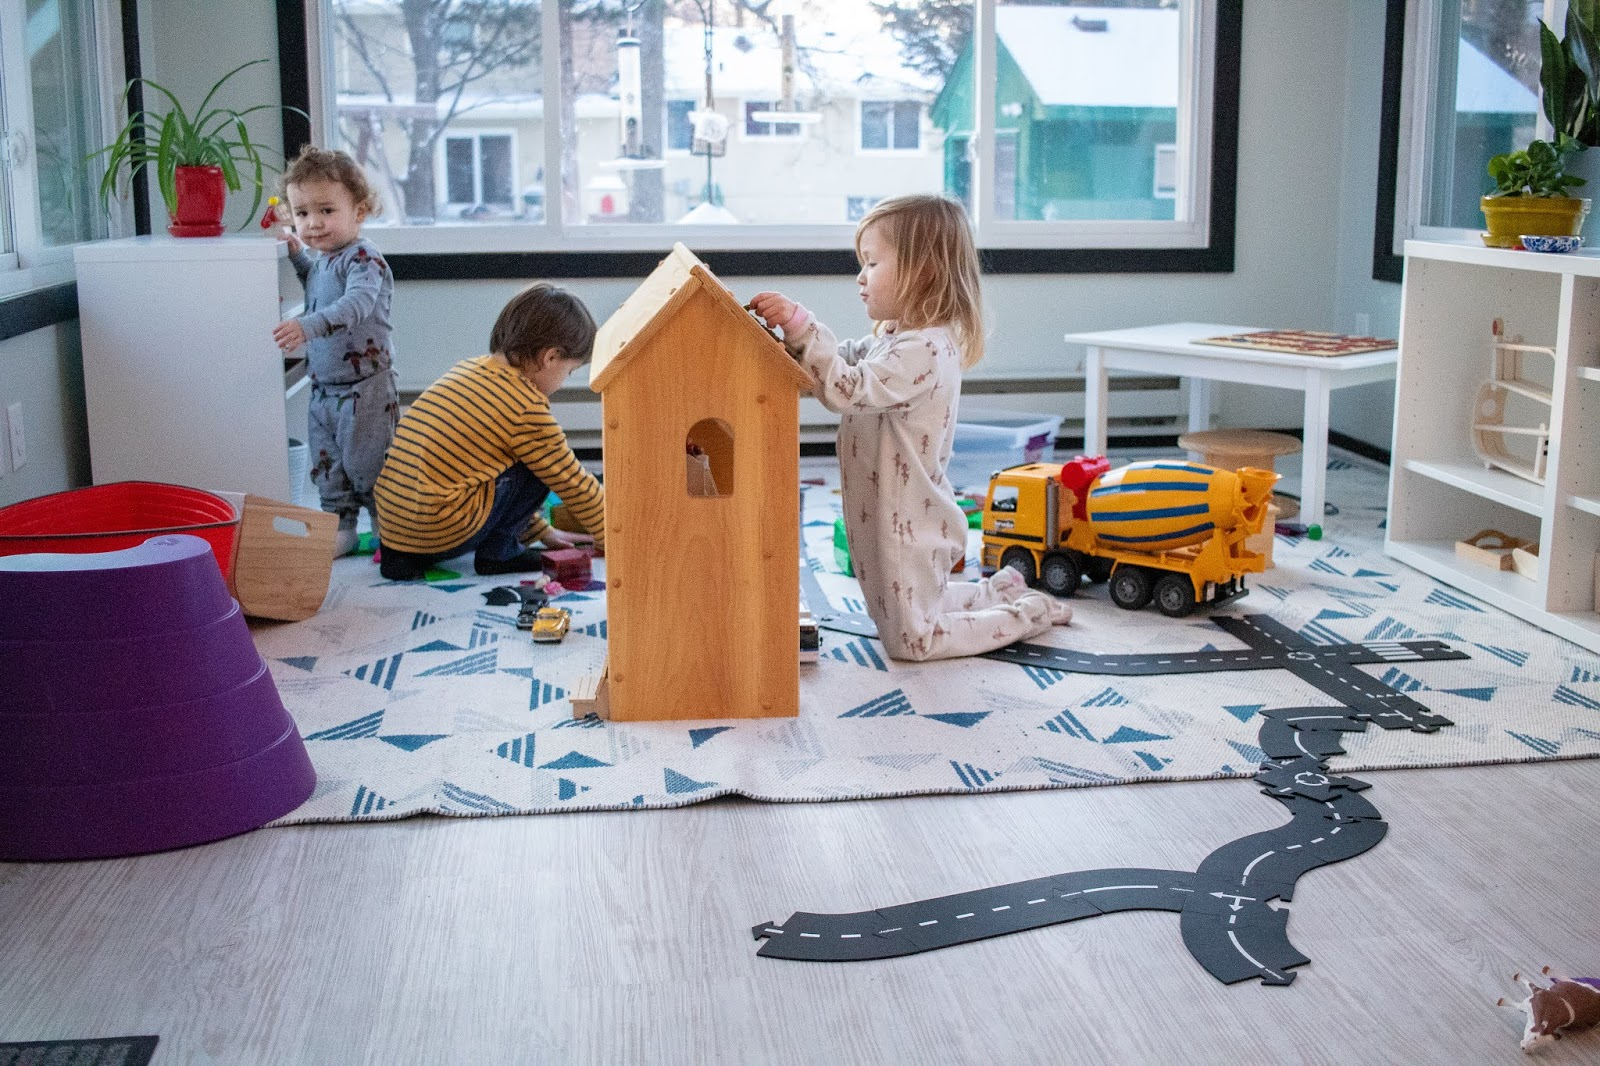 5 tips for making clean up of open ended toys a successful process - here are few things to keep in mind as your children learn to clean up from larger messes.